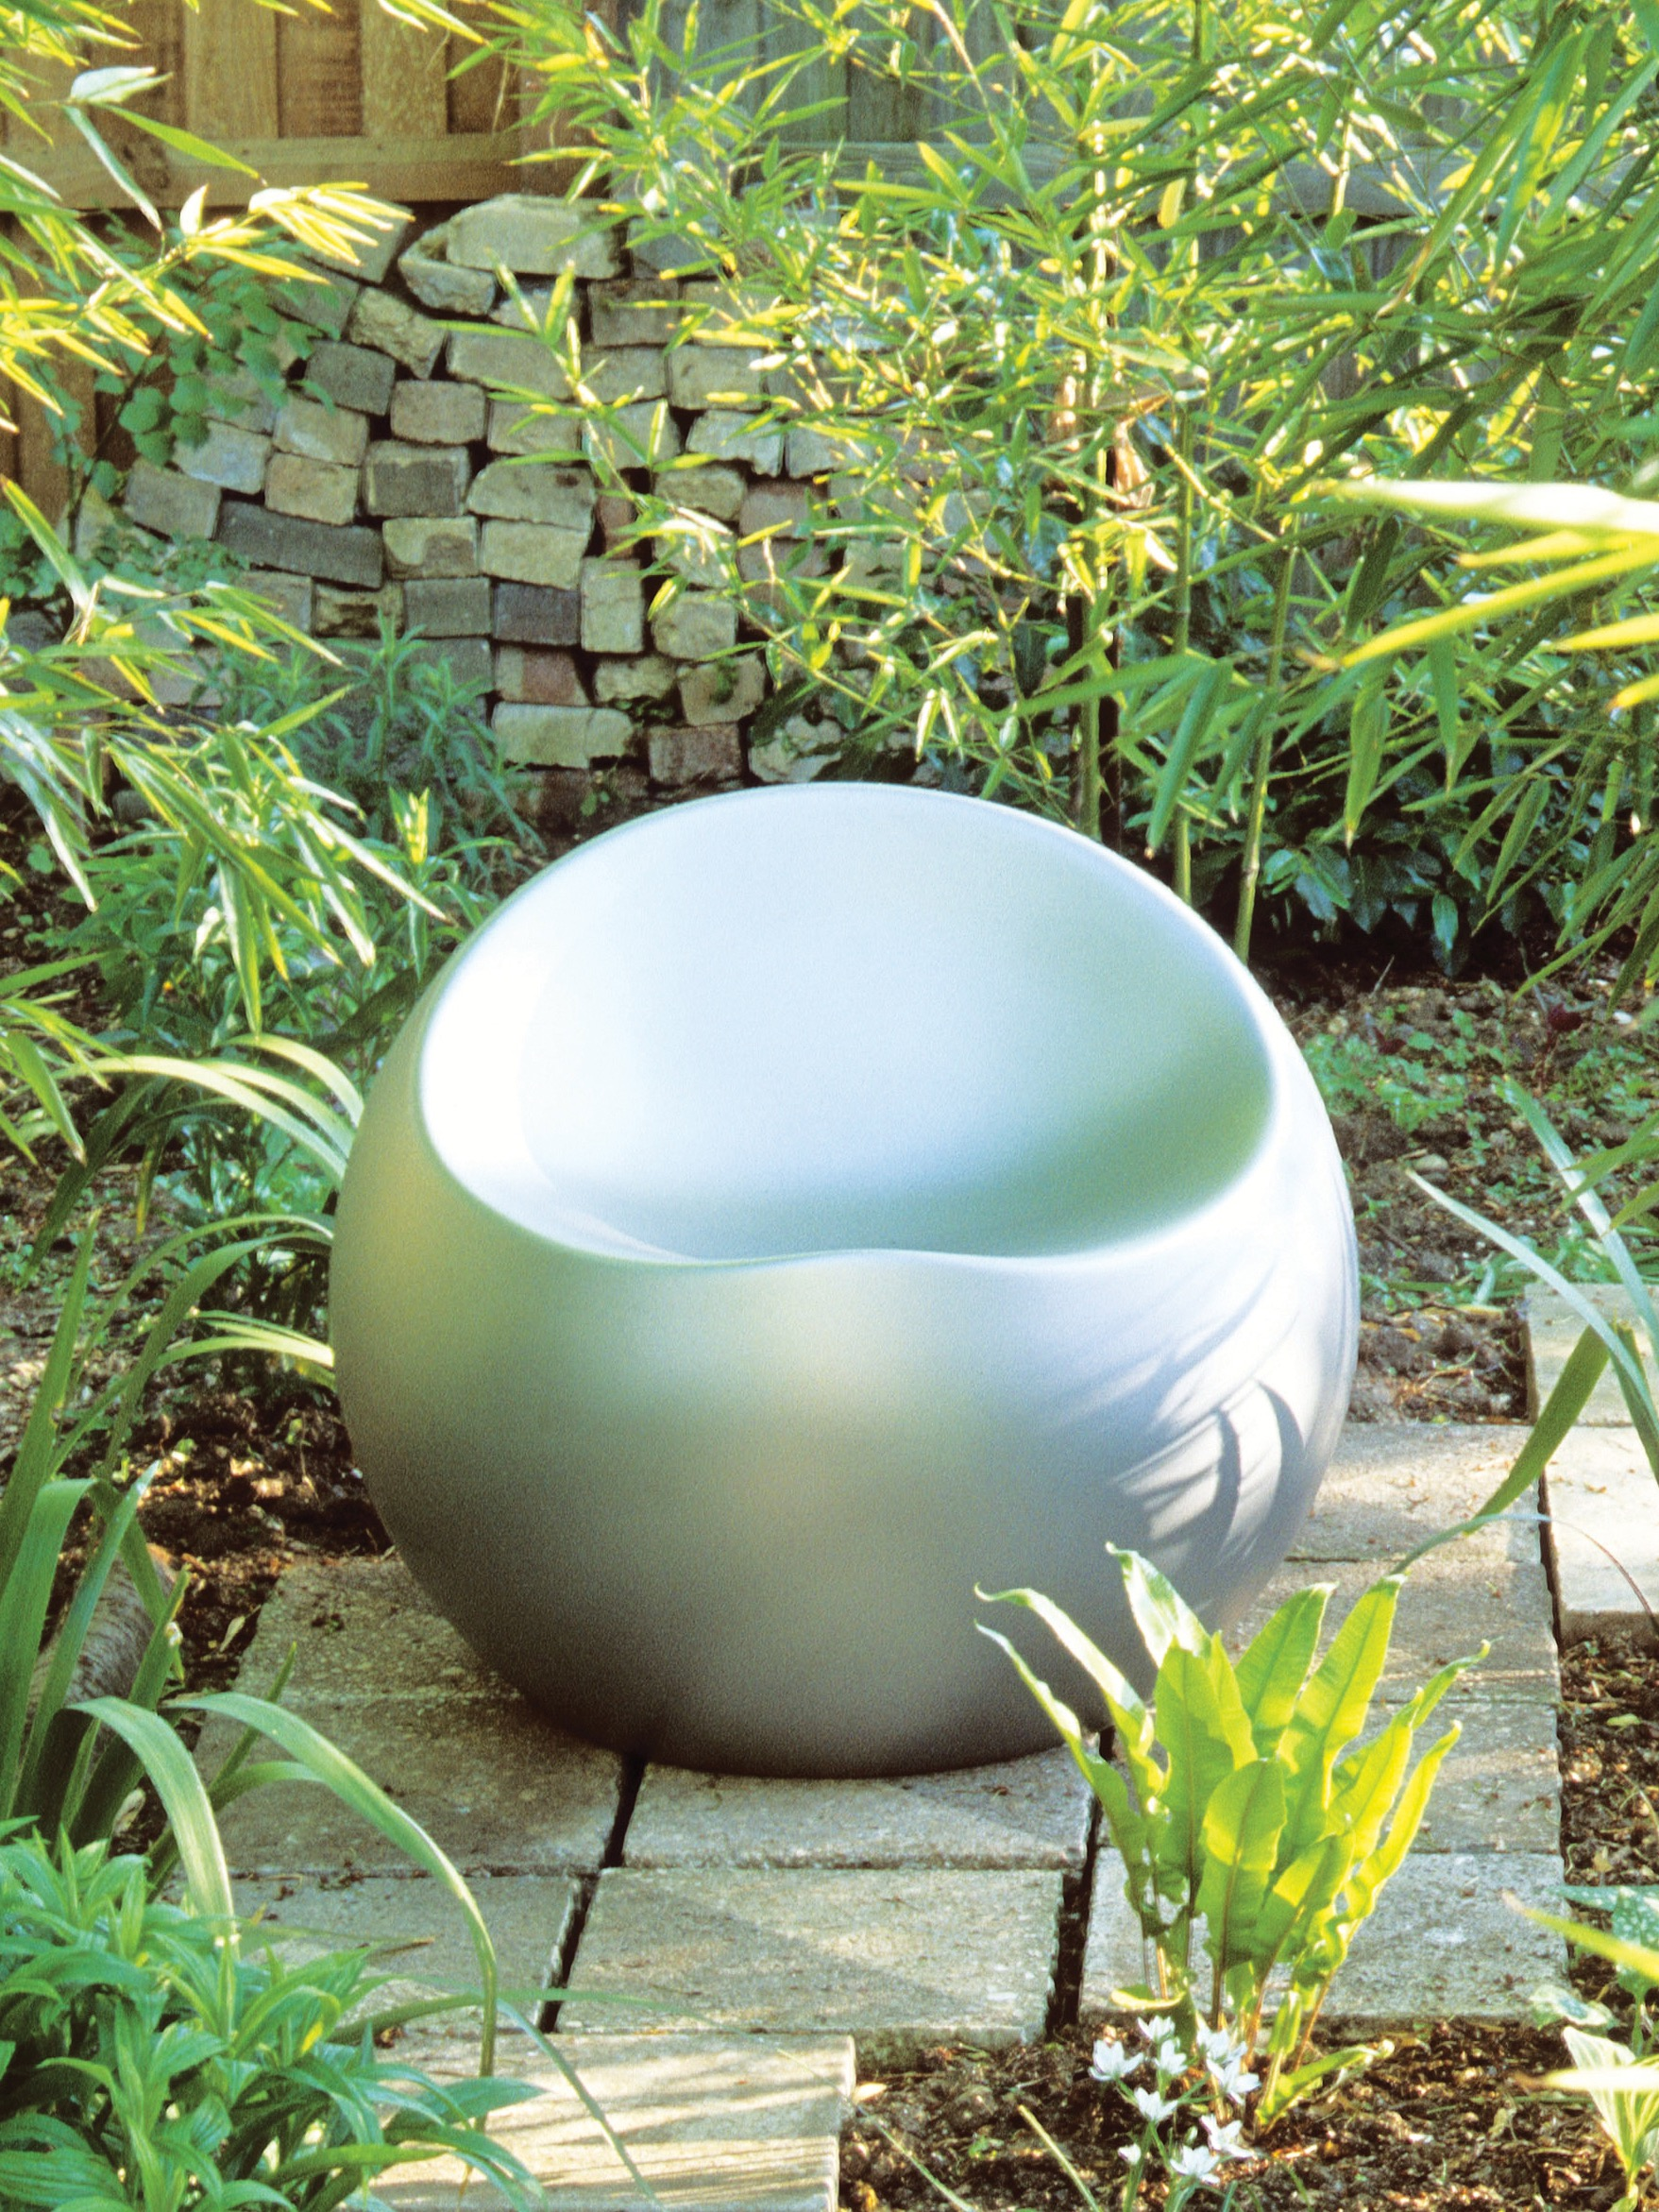 Minimalist Metallic Round Bench Seat Garden Furniture (Image 8 of 15)